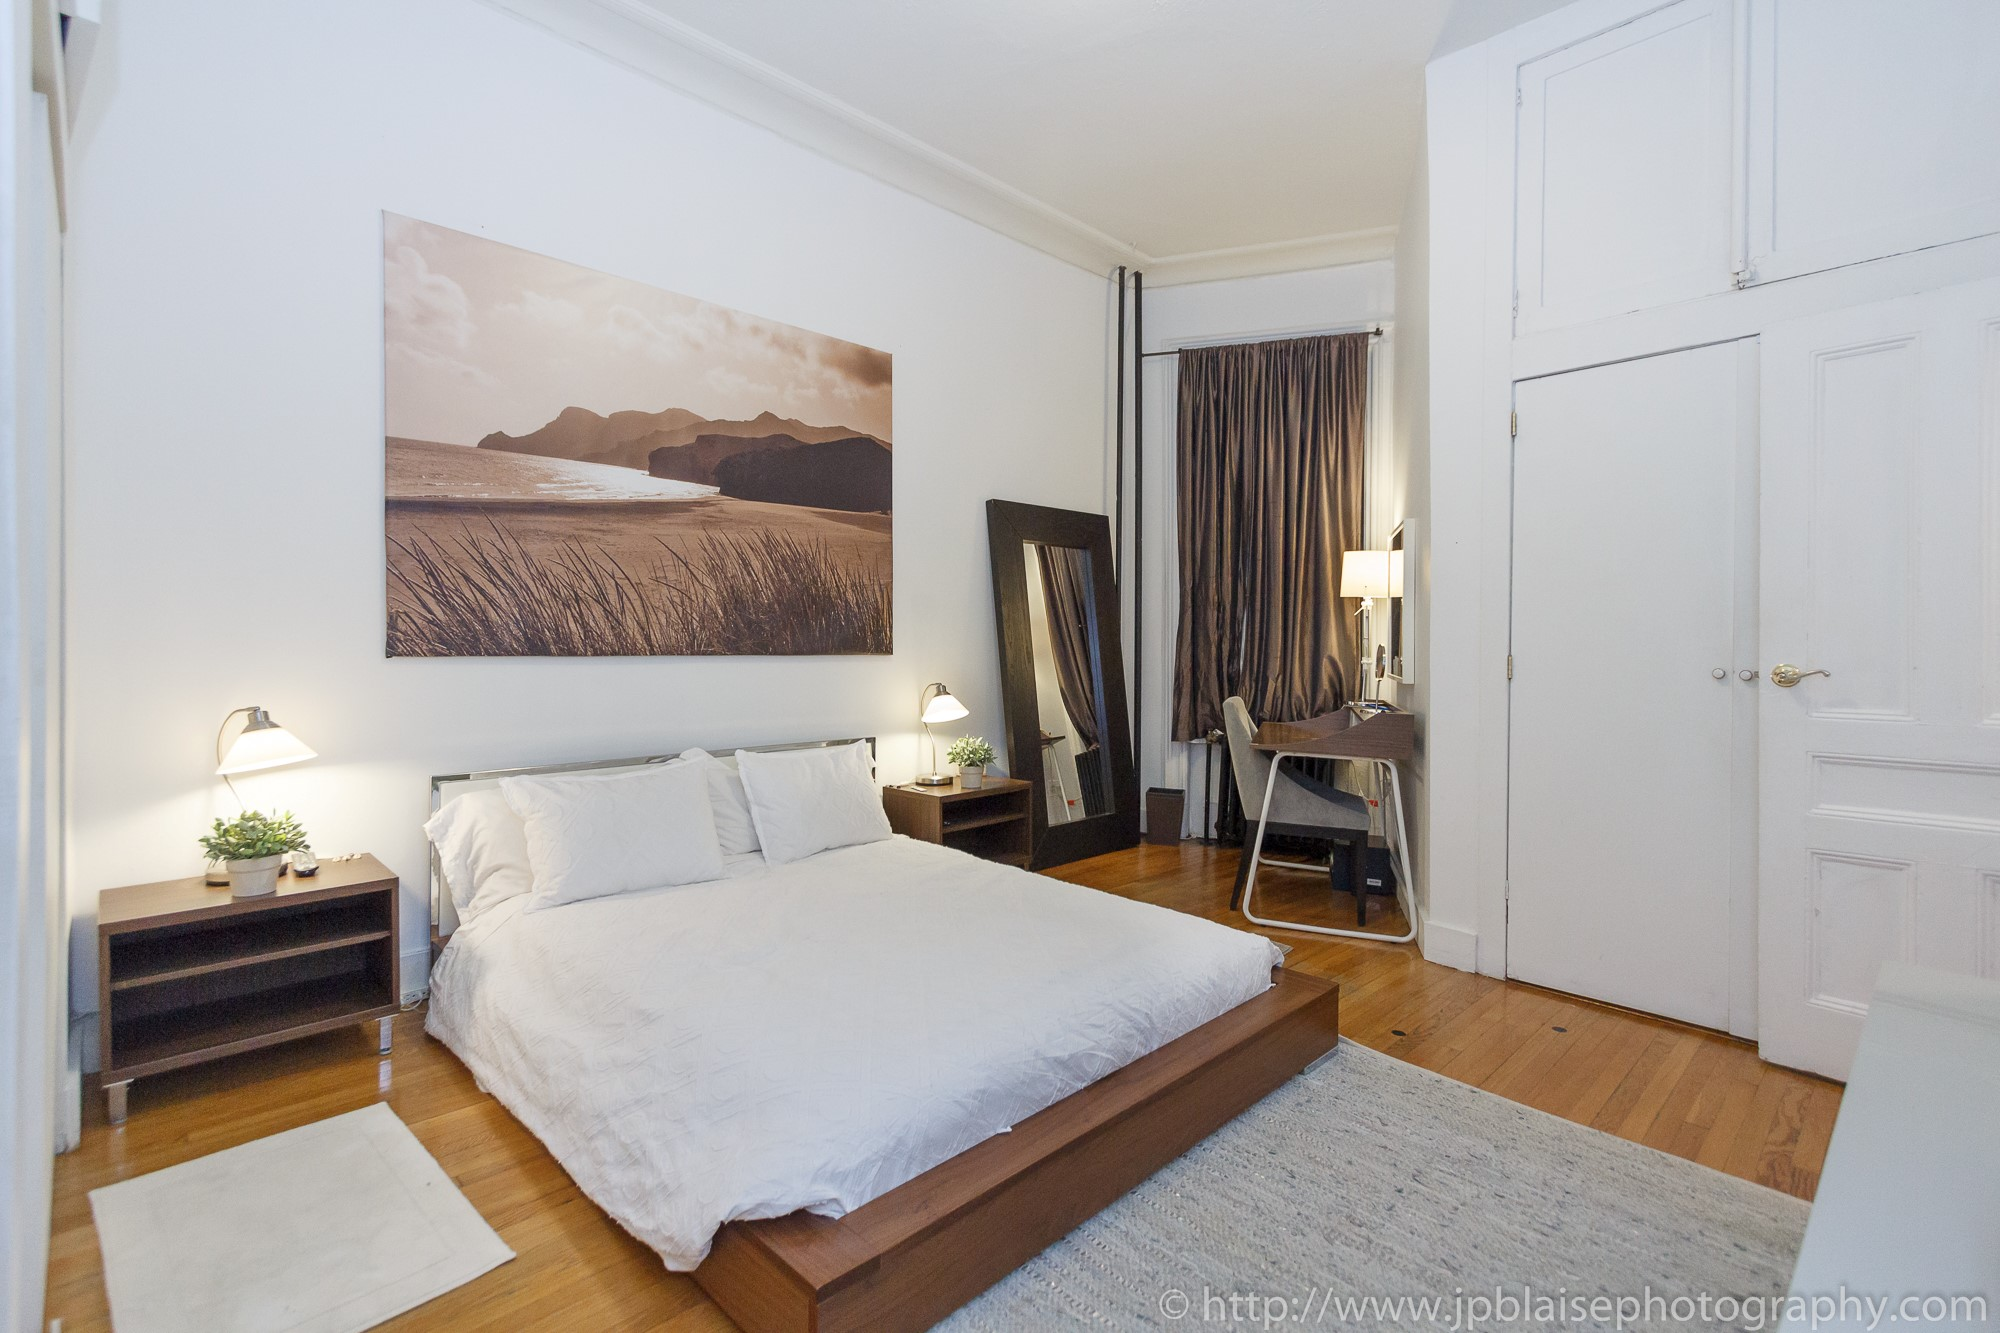 NYC apartment photographer work: Large two bedroom unit